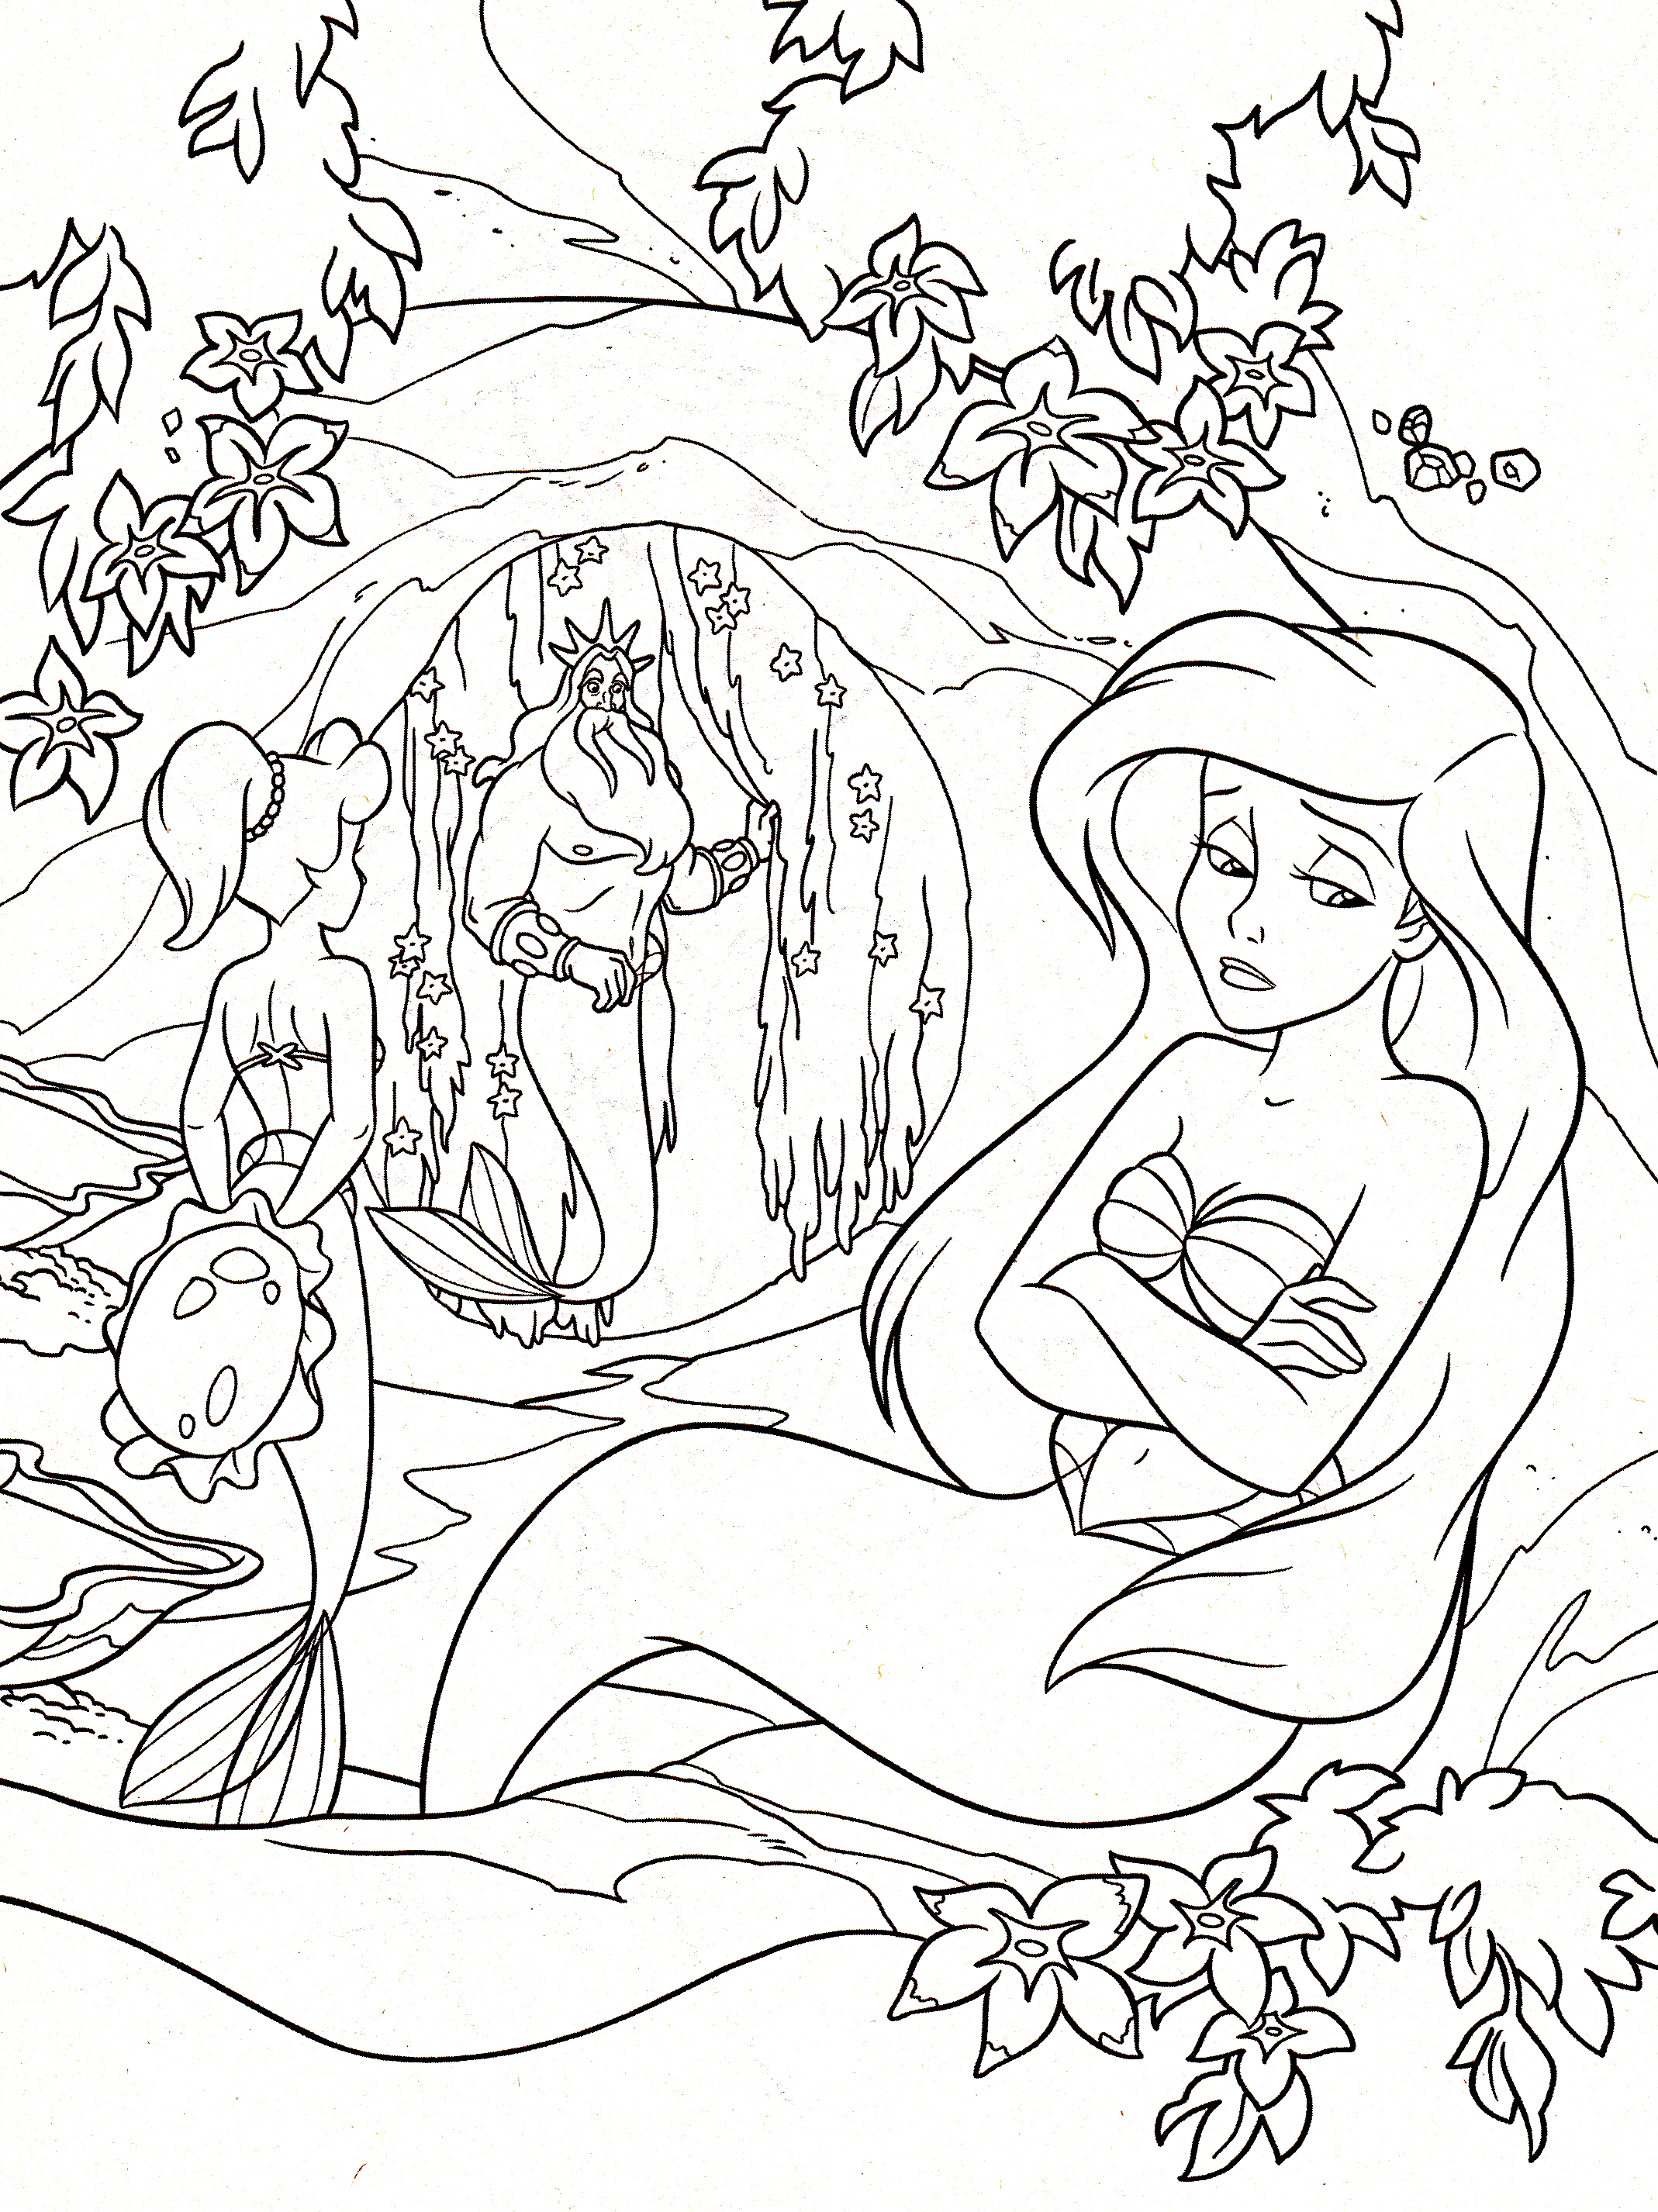 Walt Disney Coloring Pages - Princess Aquata, King Triton ...